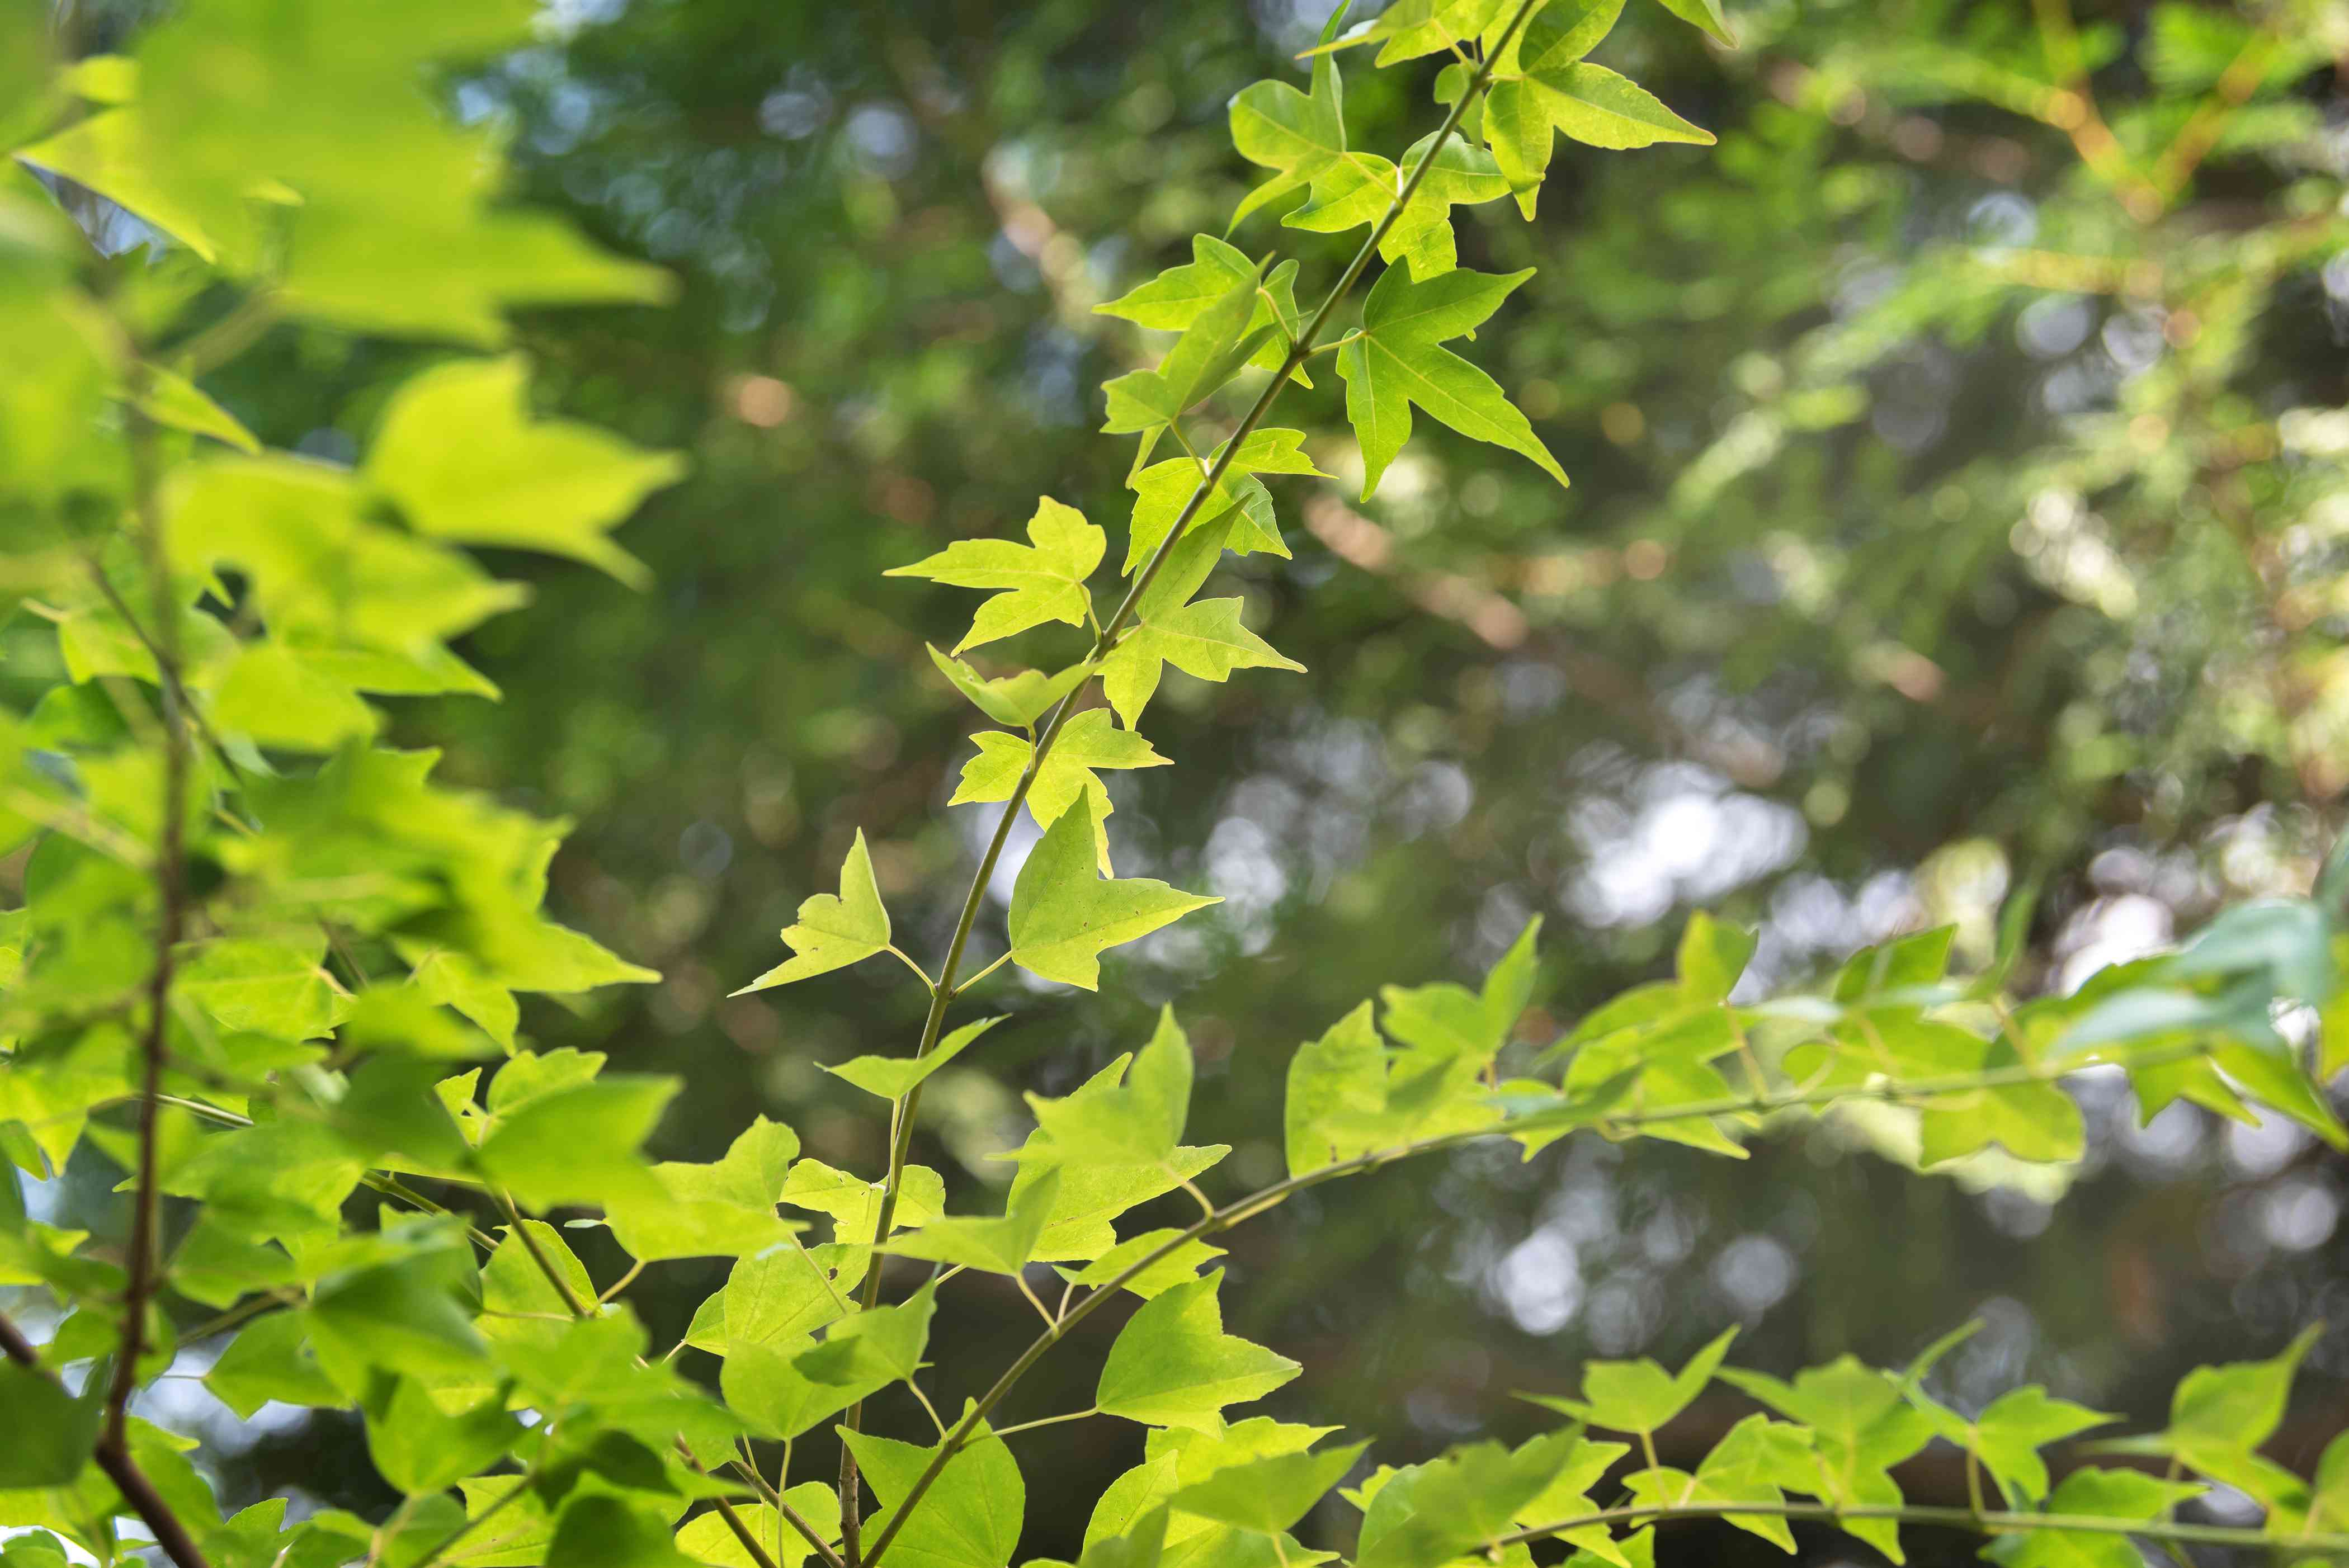 Trident maple tree branches with three-lobed leaves in sunlight